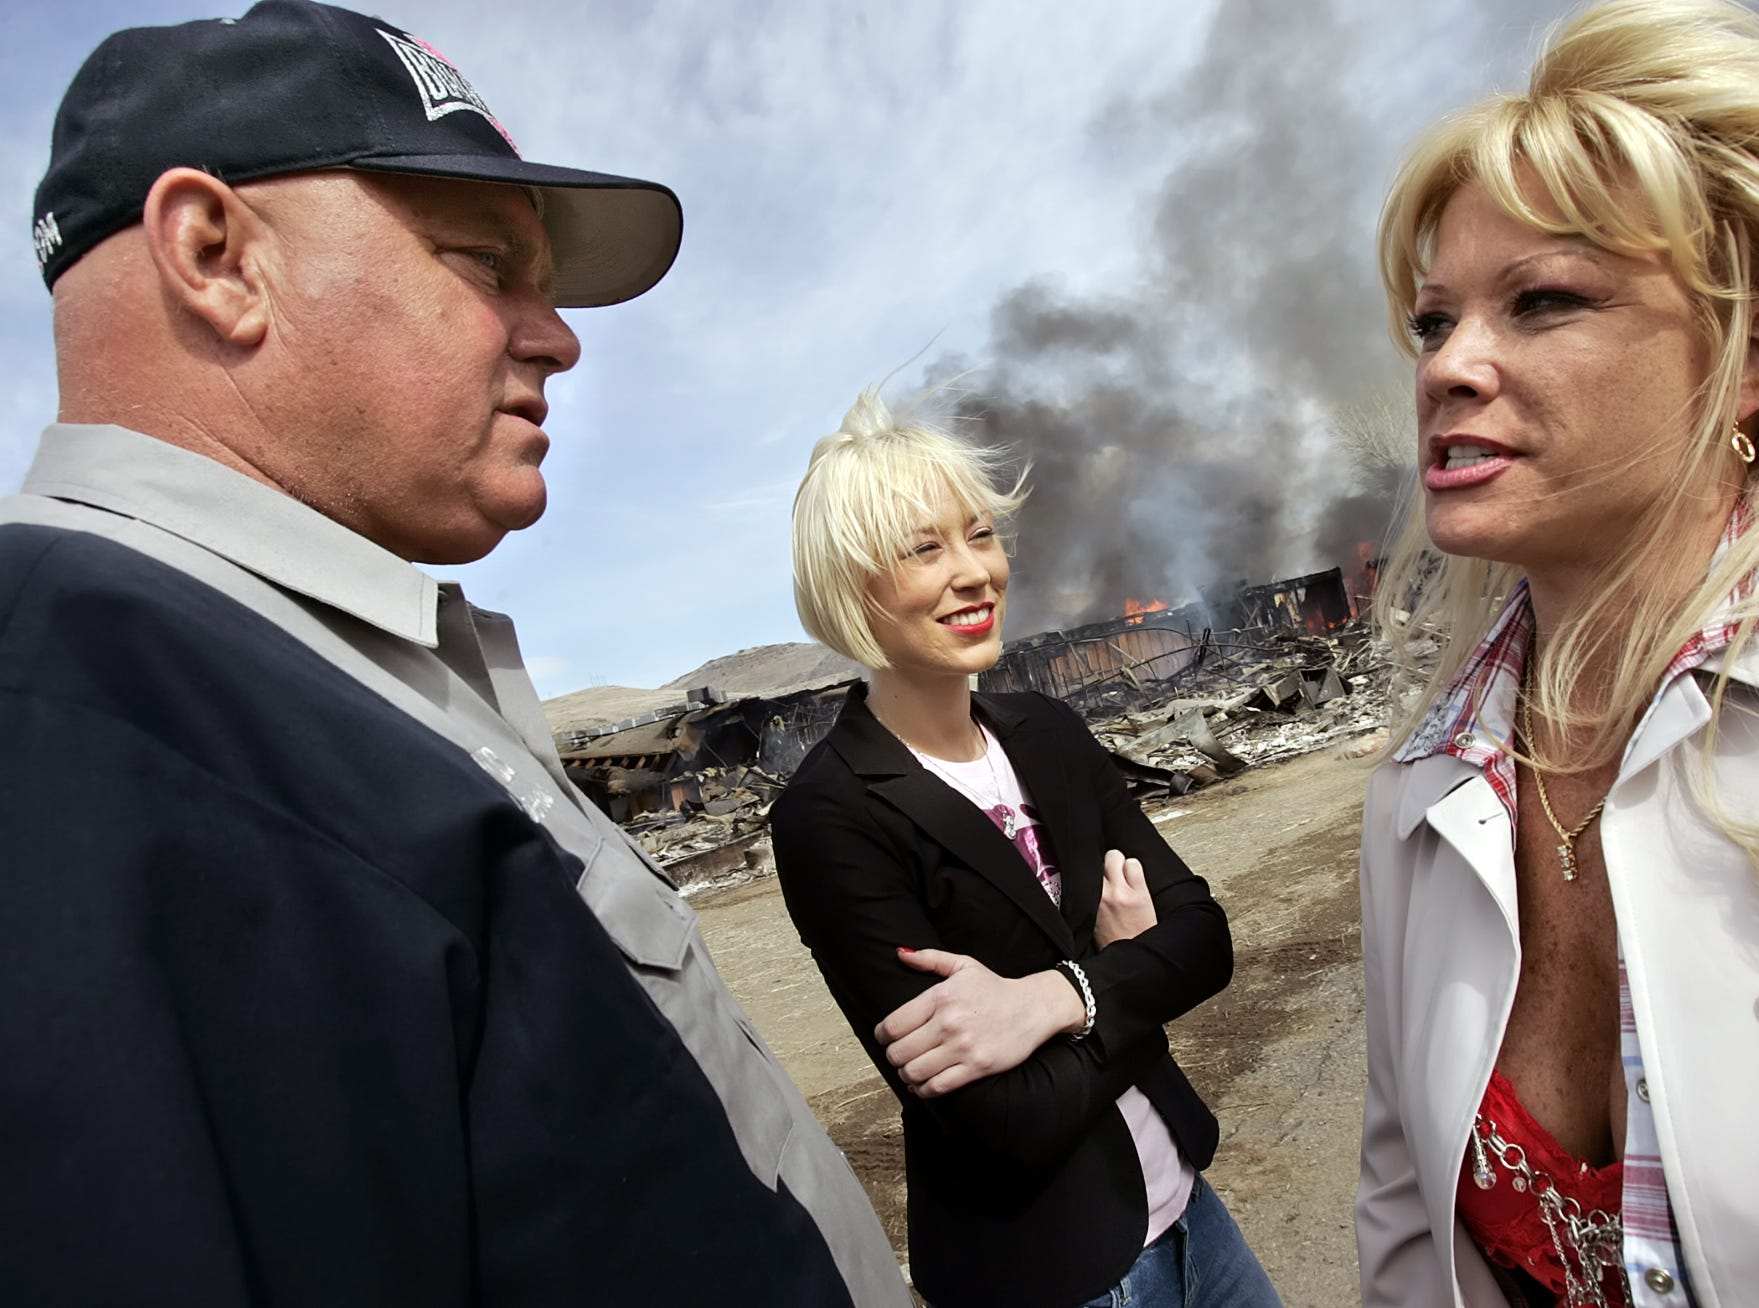 """Moonlite Bunny ranch brothel owner Dennis Hof, left, talks with two of his employees, Brooke Taylor, center, and a woman who identified herself as """"Airforce Amy"""" as the remains of the former Mustang Ranch 2 brothel burns during a training exercise, east of Reno, Nev., Sunday, March 25, 2007. Hof donated the structure to the Storey County fire department for fire training. (AP Photo/Nevada Appeal, Chad Lundquist)"""